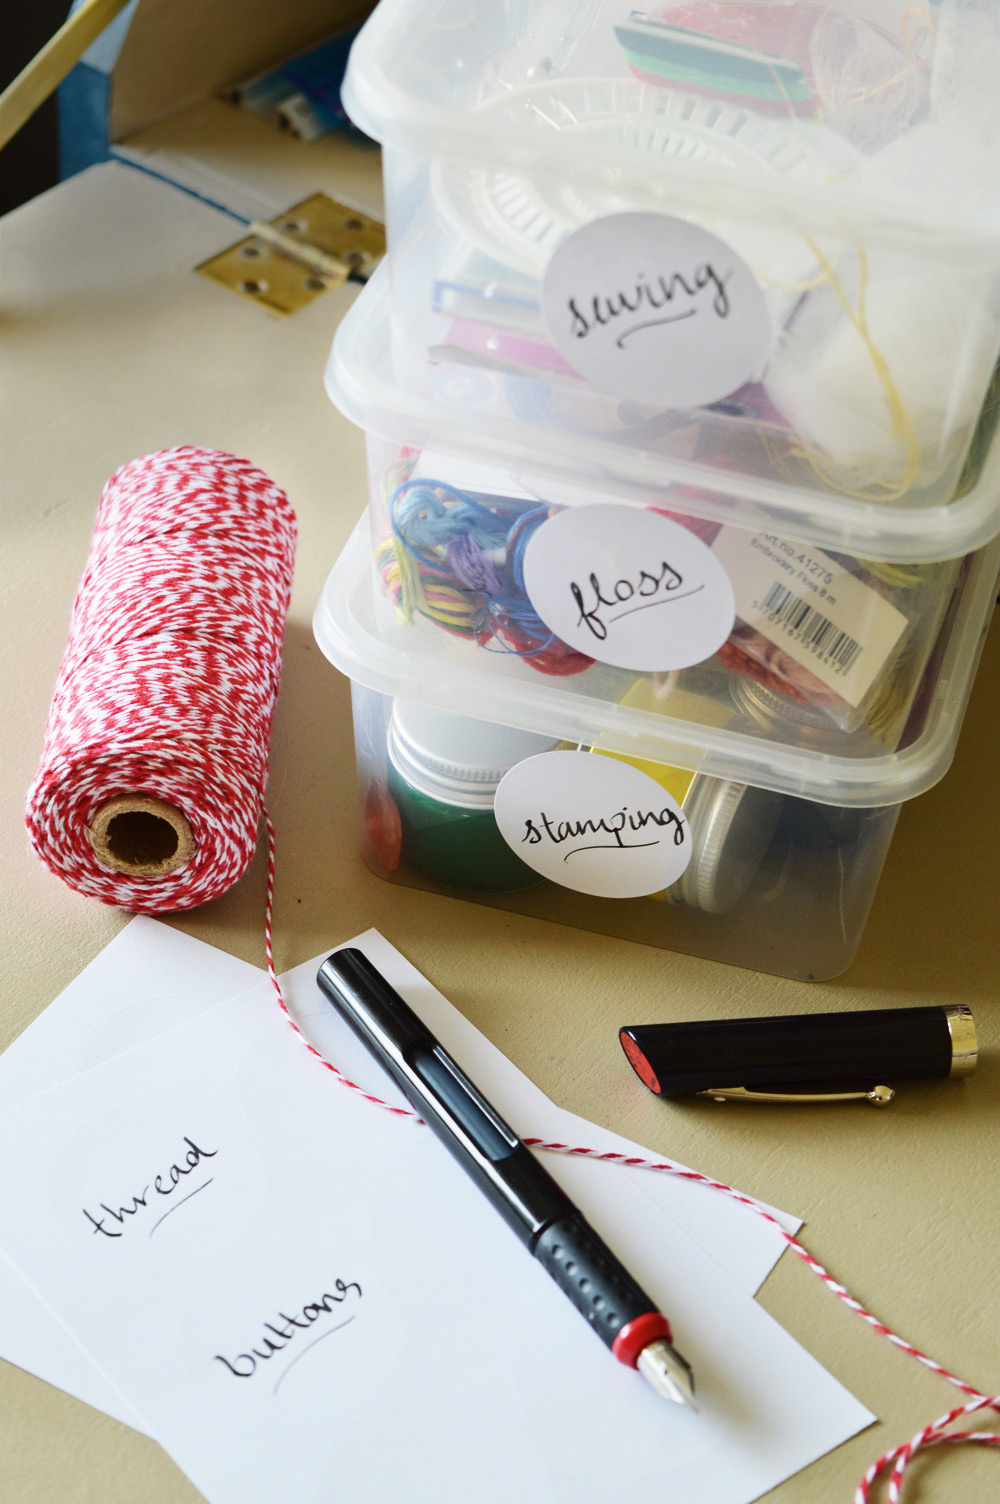 Organising craft materials with handwritten labels